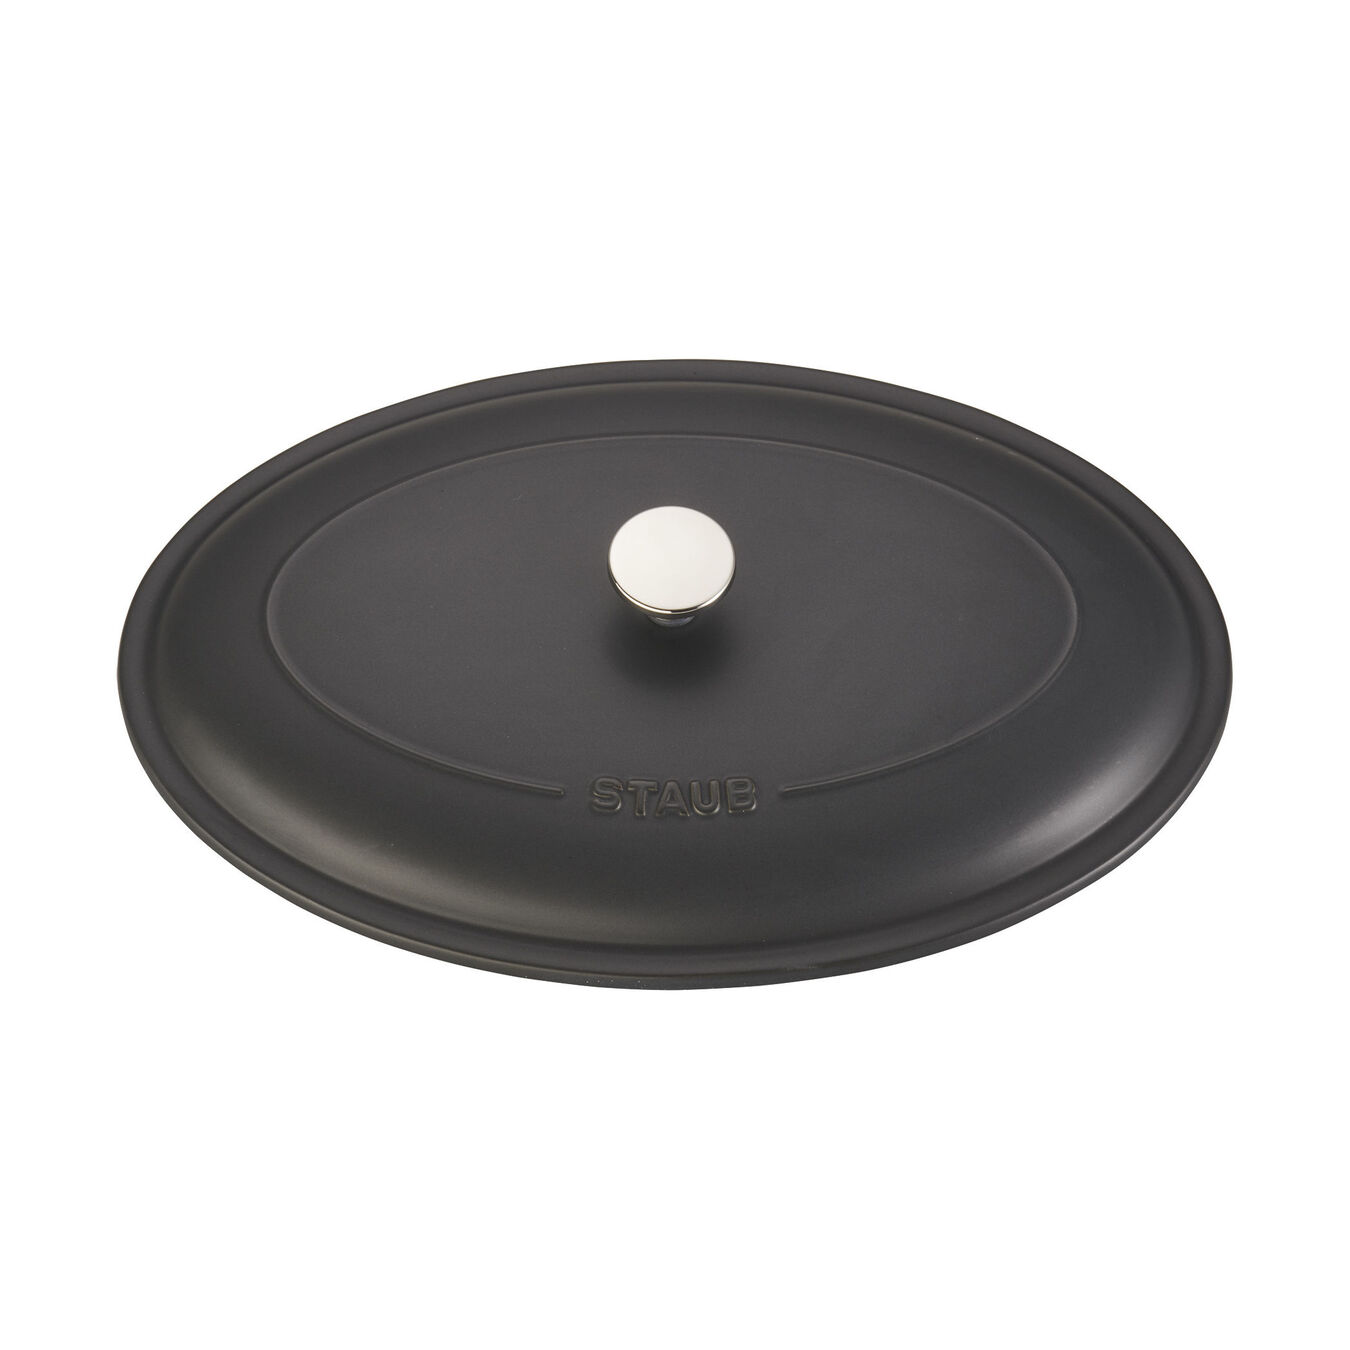 14-inch Oval Covered Baking Dish - Matte Black,,large 4